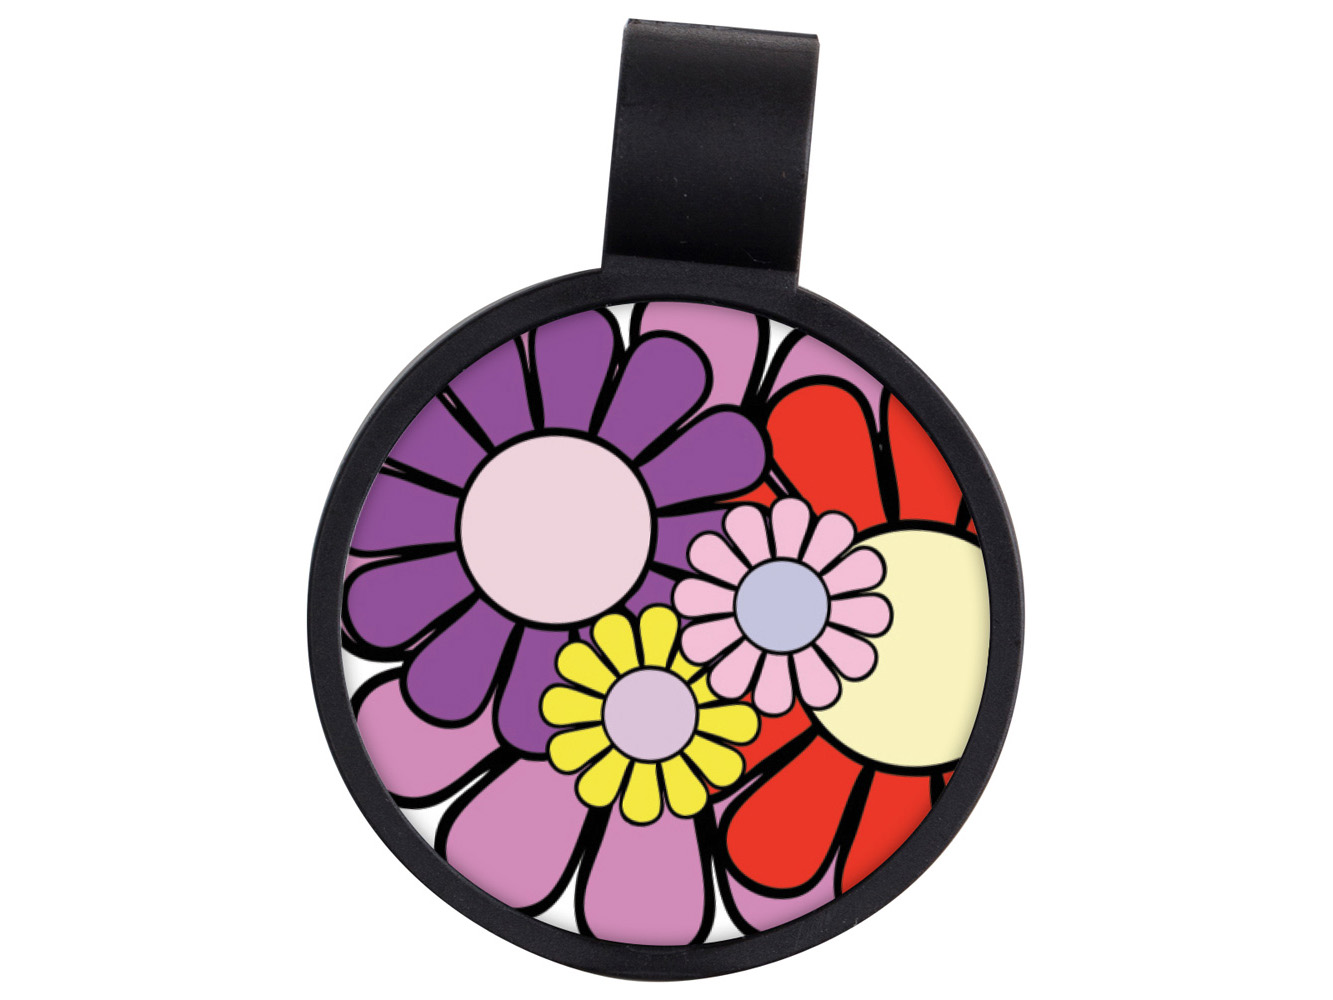 STF13: Daisies Anti-Microbial Stethoscope ID Tag